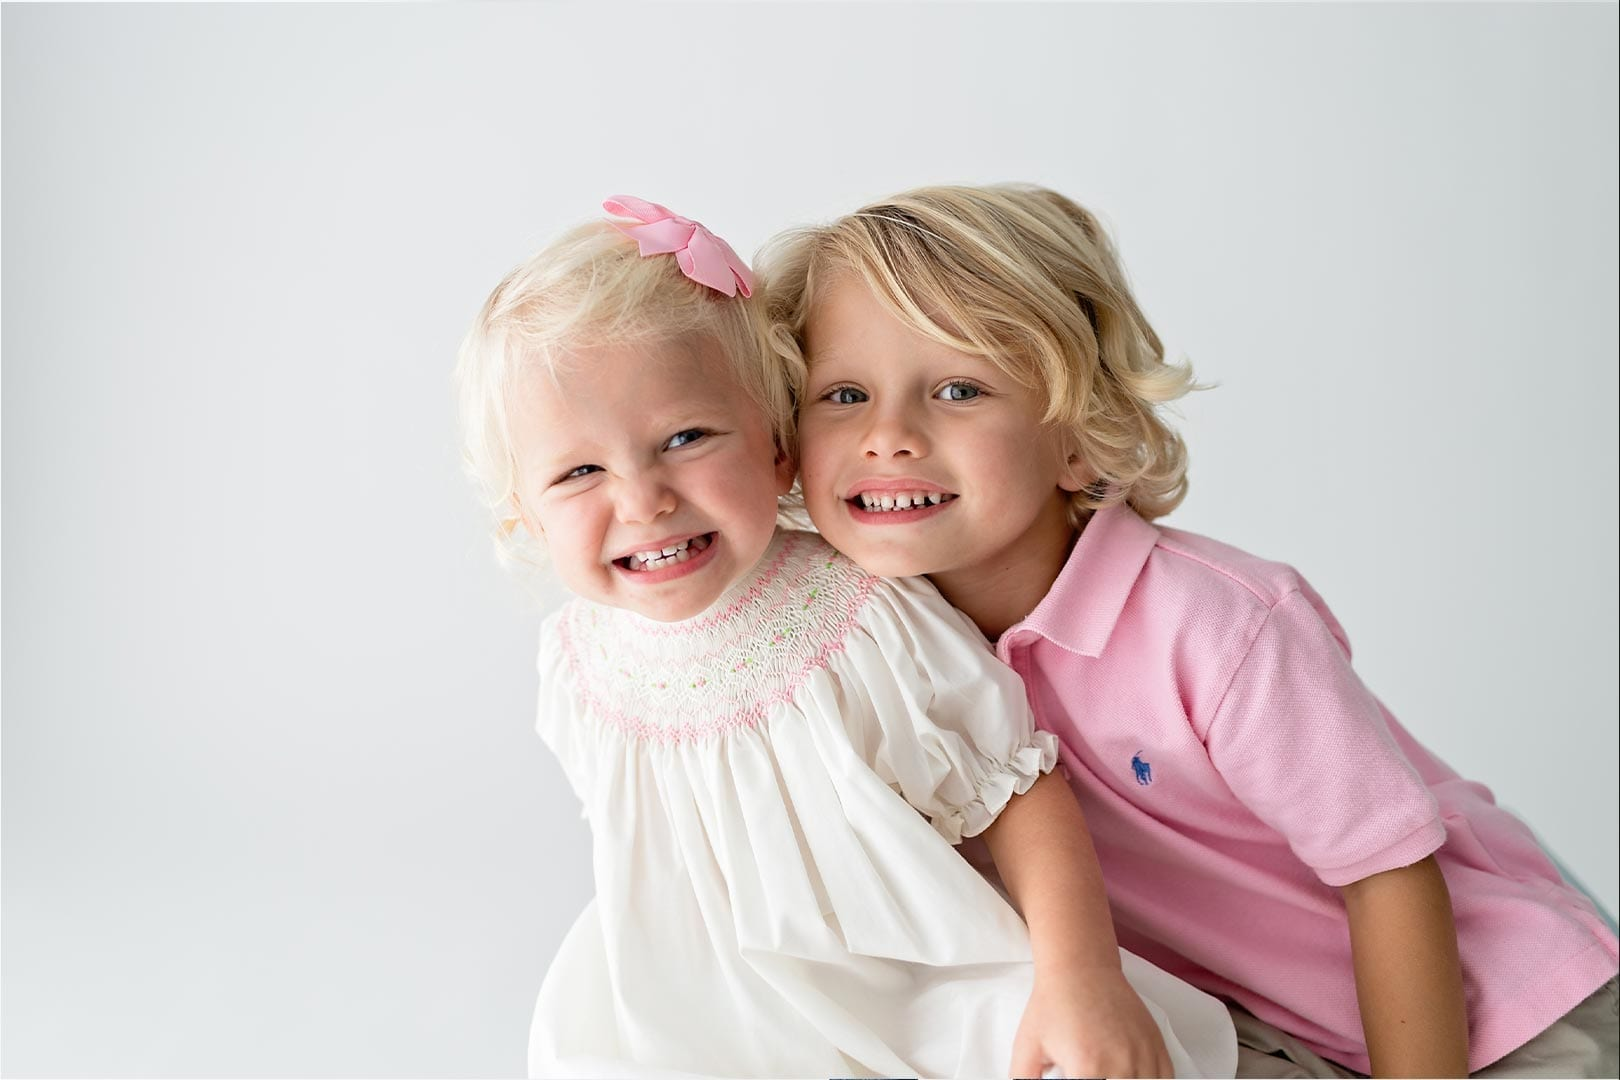 photo of a little boy and girl smiling